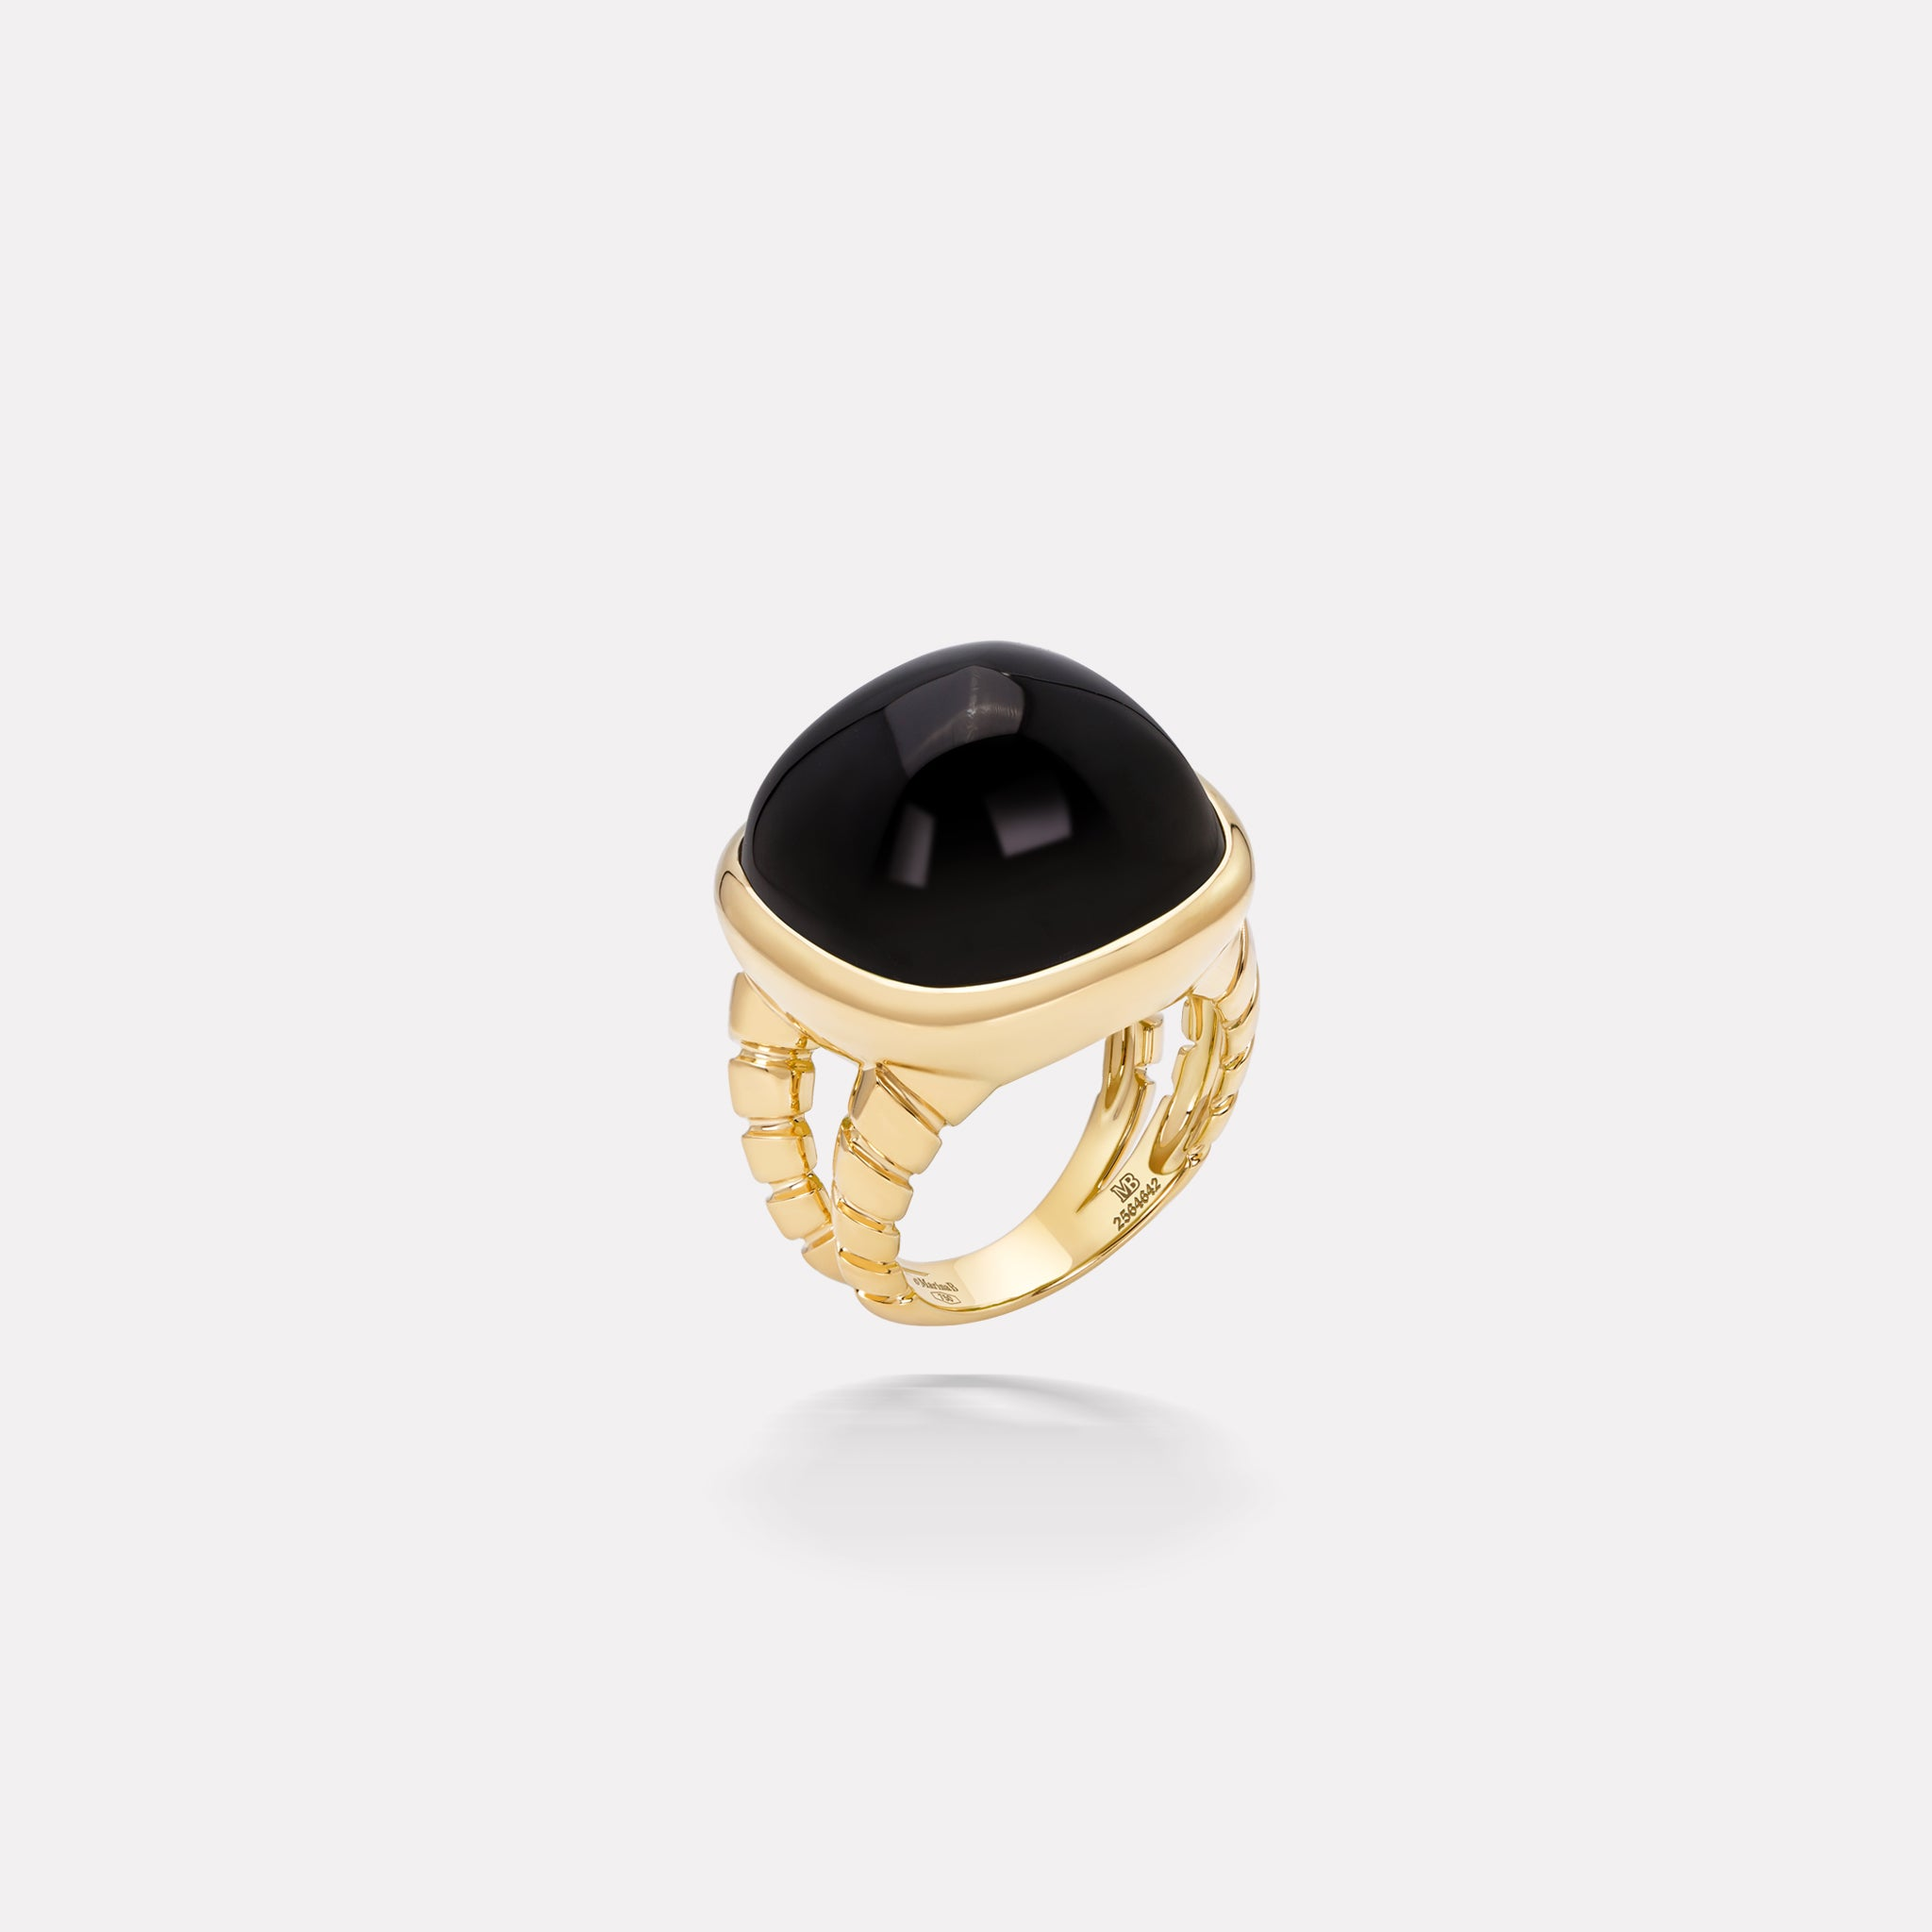 marinab.com, Tigella Black Spinel Ring